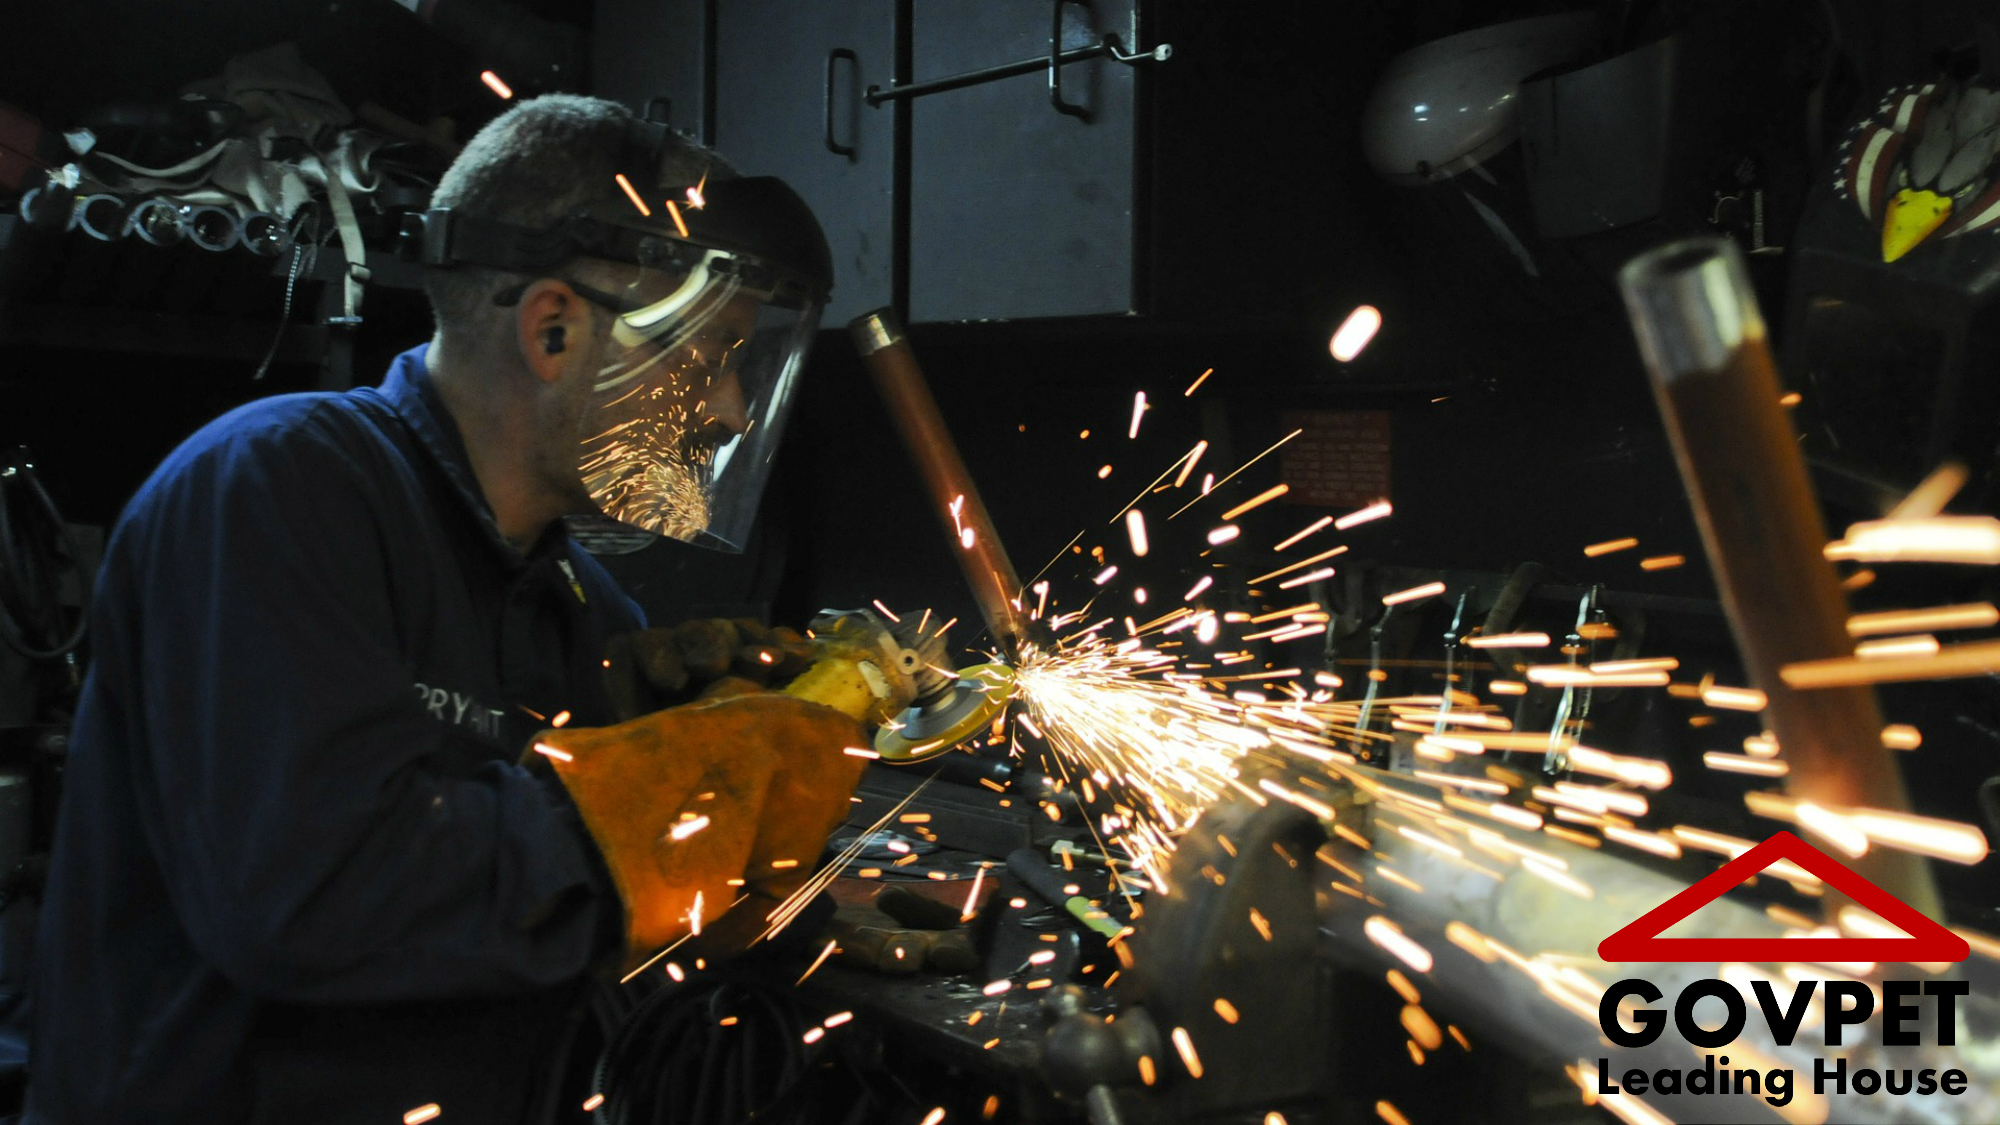 Metal worker during apprenticeship and Logo